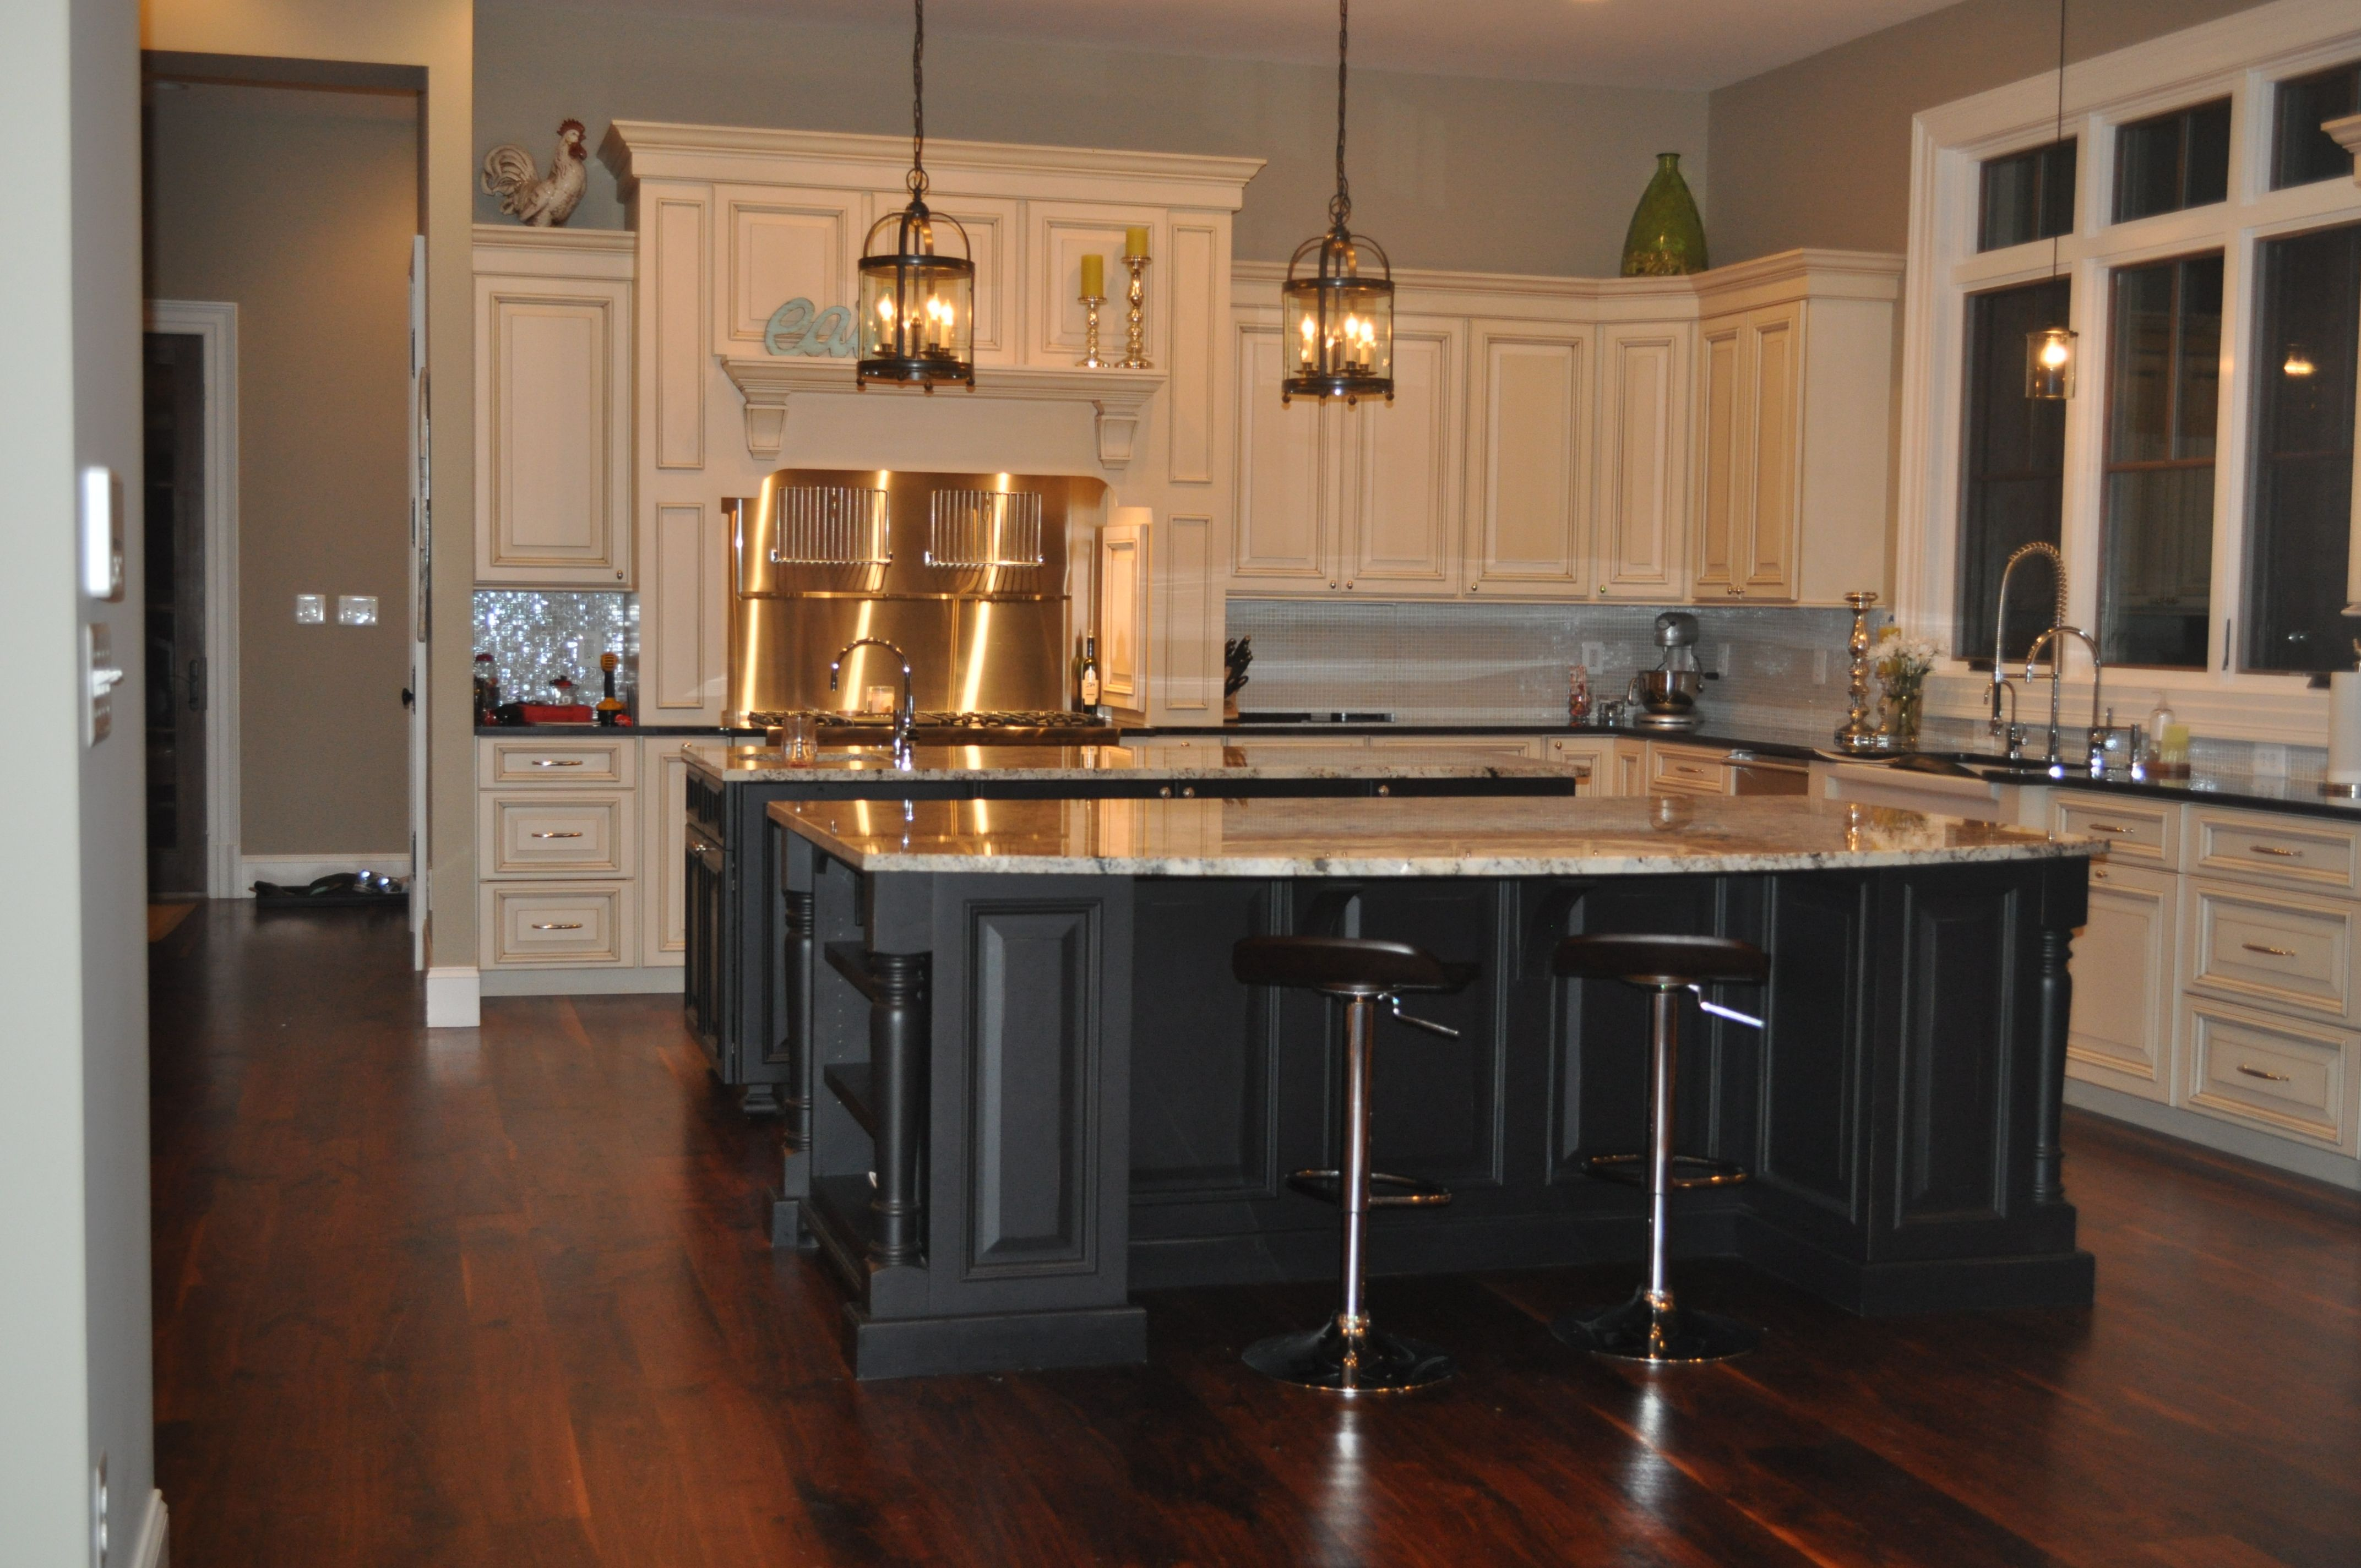 My current kitchen with double islands kitchens pinterest for Double island kitchen